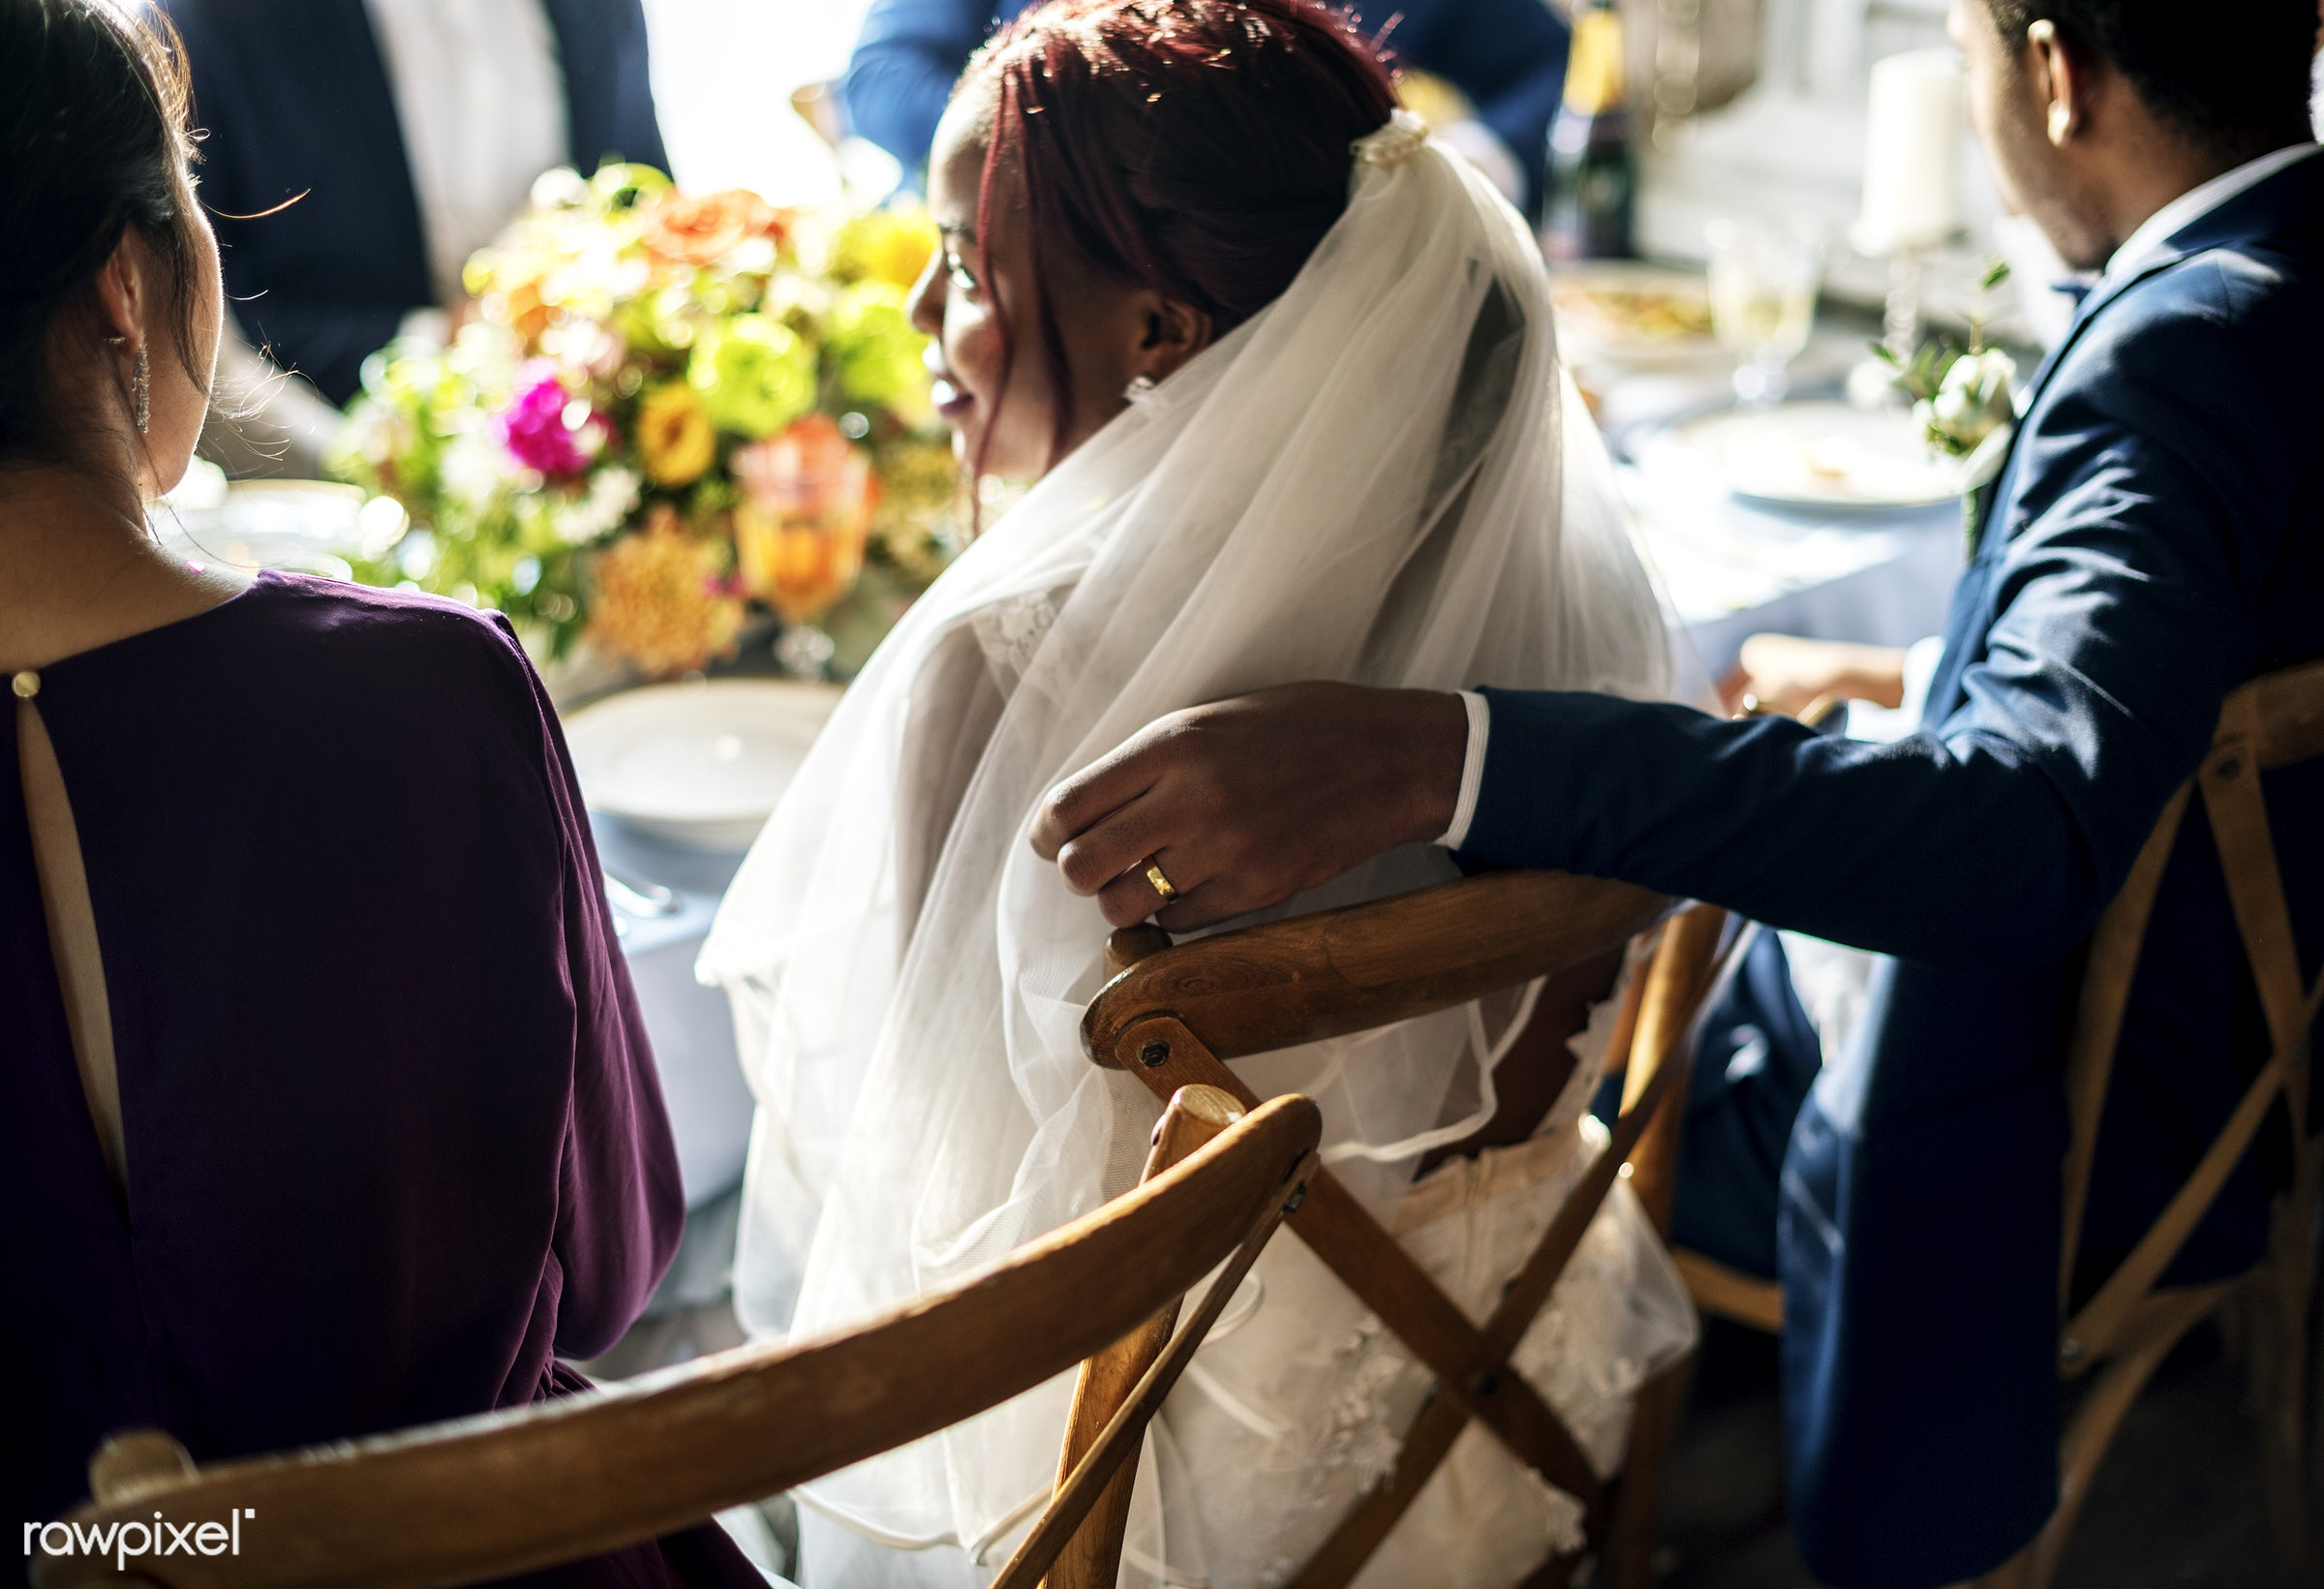 wedding, african descent, black, bridal, bride, celebrate, celebration, chairs, cheerful, enjoyment, event, fiance, friends...